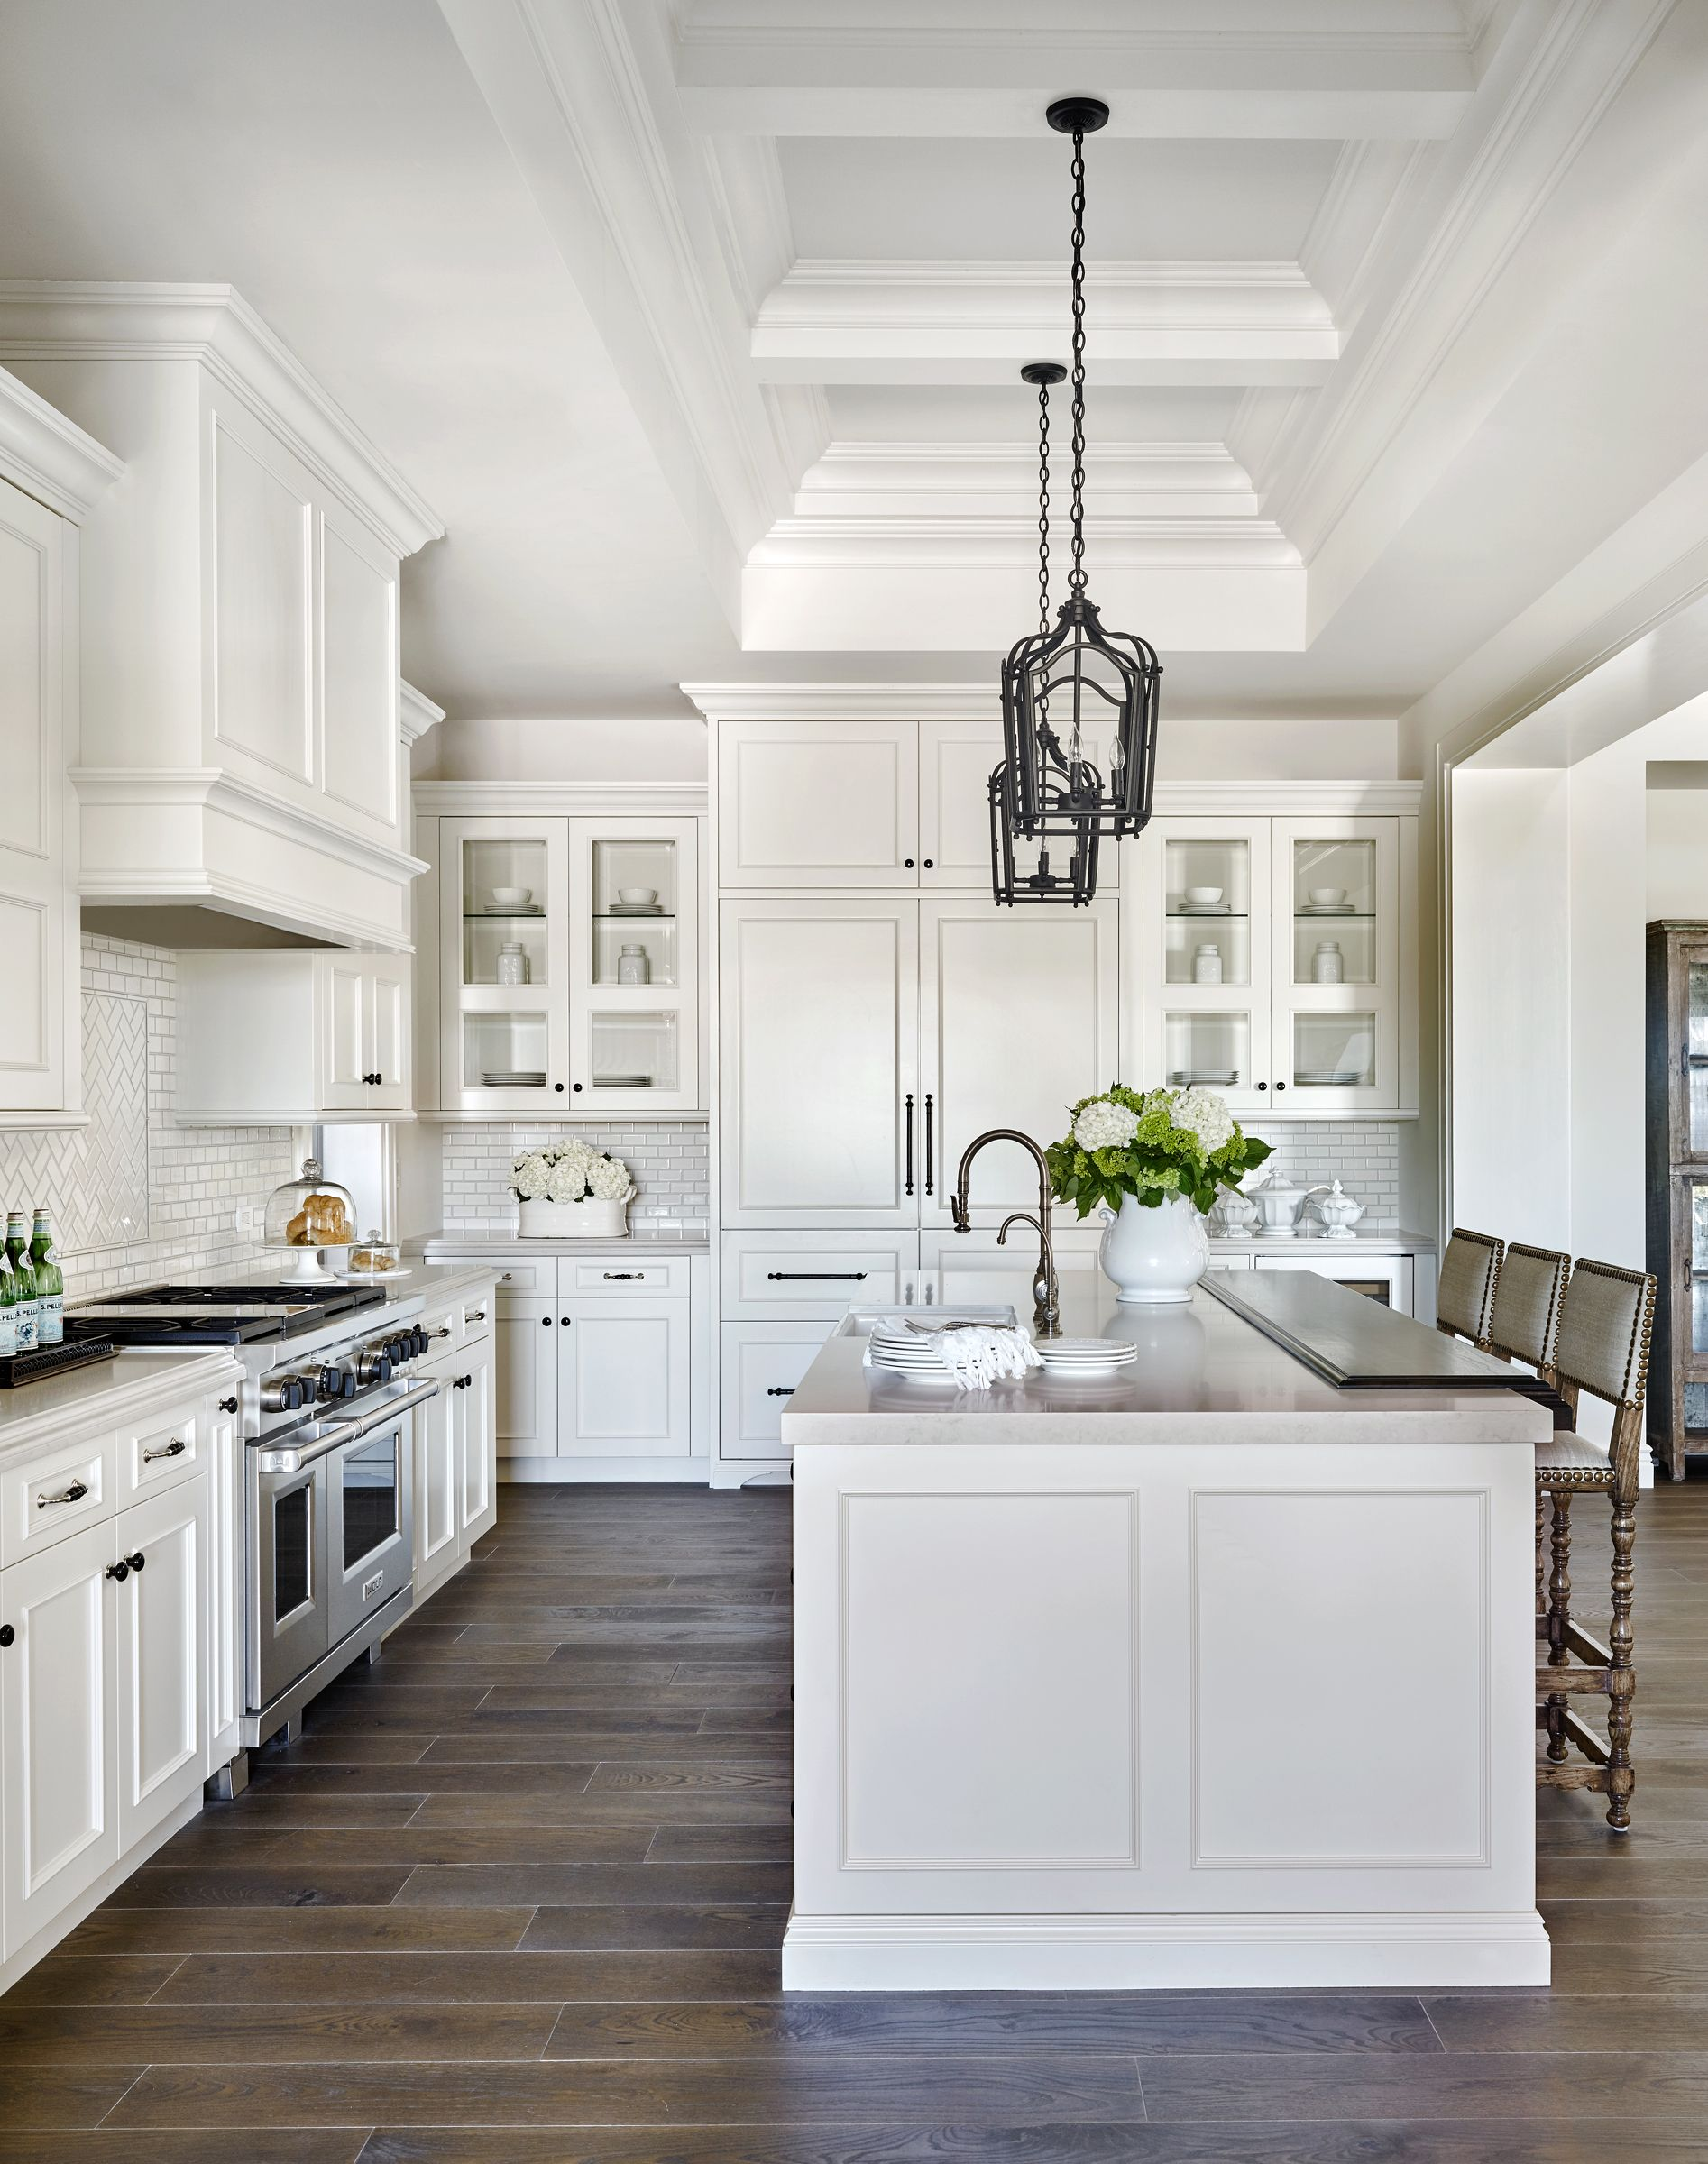 Pictures Of Kitchens With White Appliances